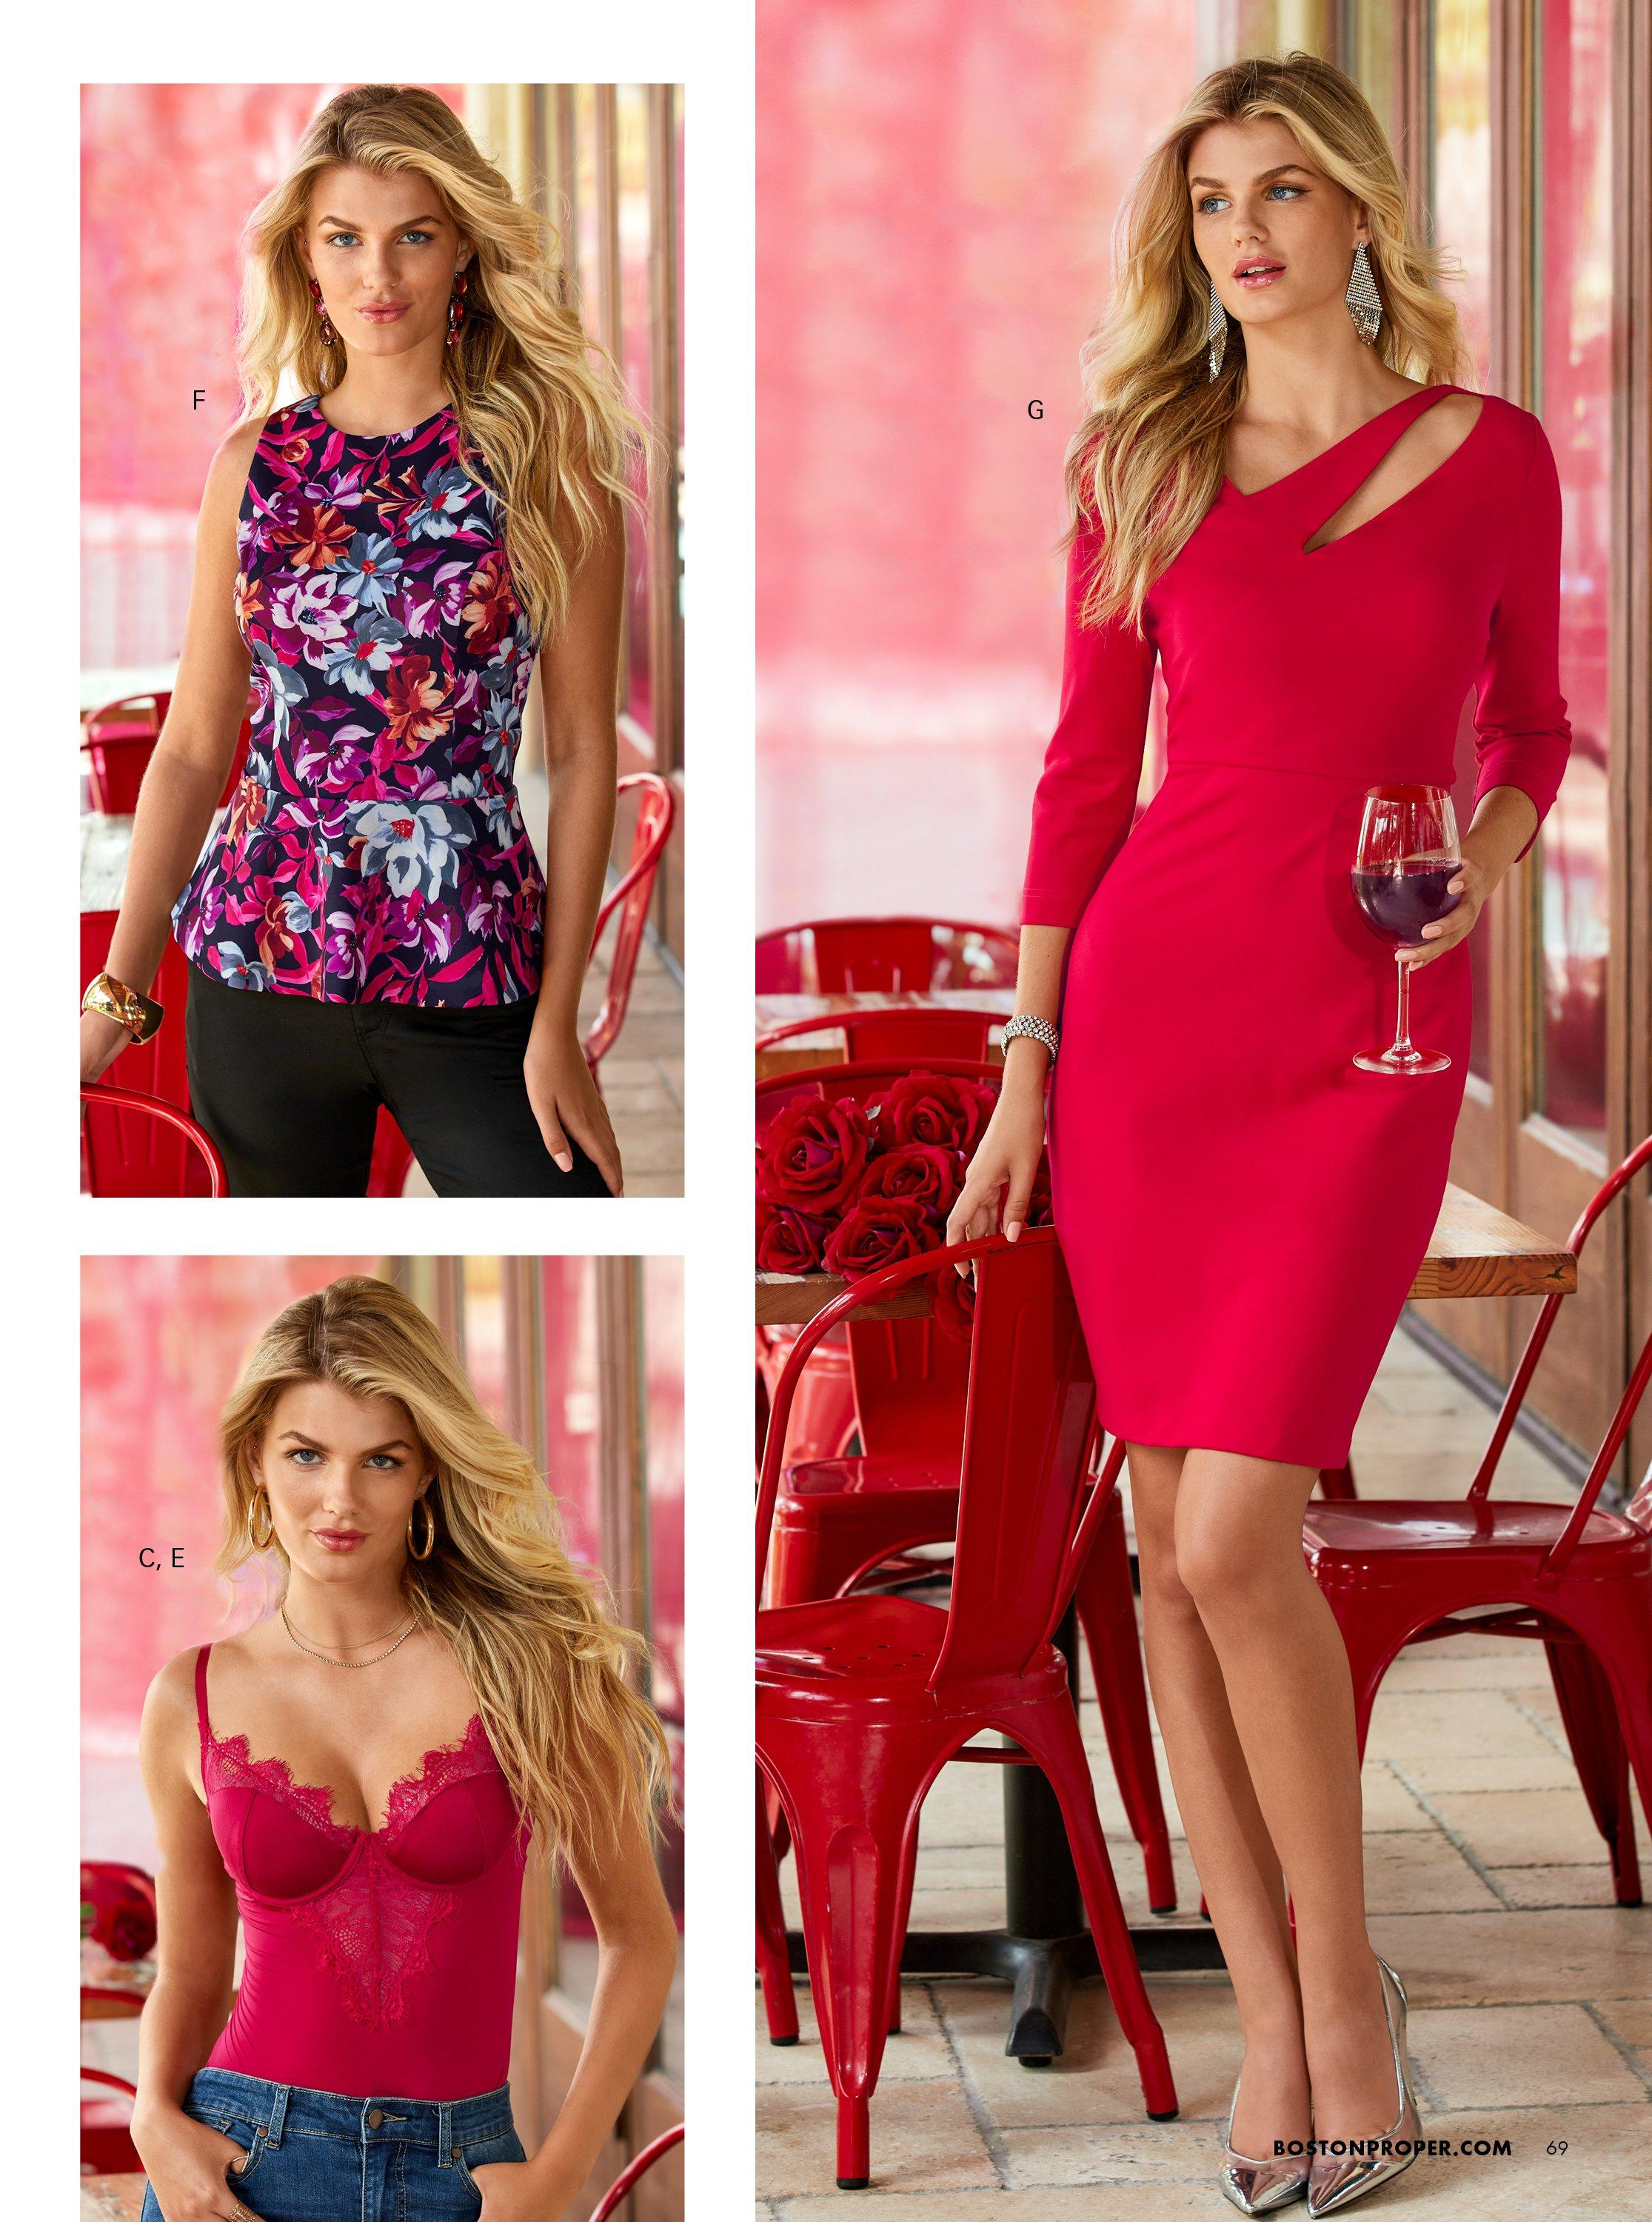 top left model wearing a pink and purple floral print sleeveless top and black pants. bottom left model wearing a red scalloped lace bodysuit and jeans. right model wearing a long-sleeve red sheath dress with a cutout.